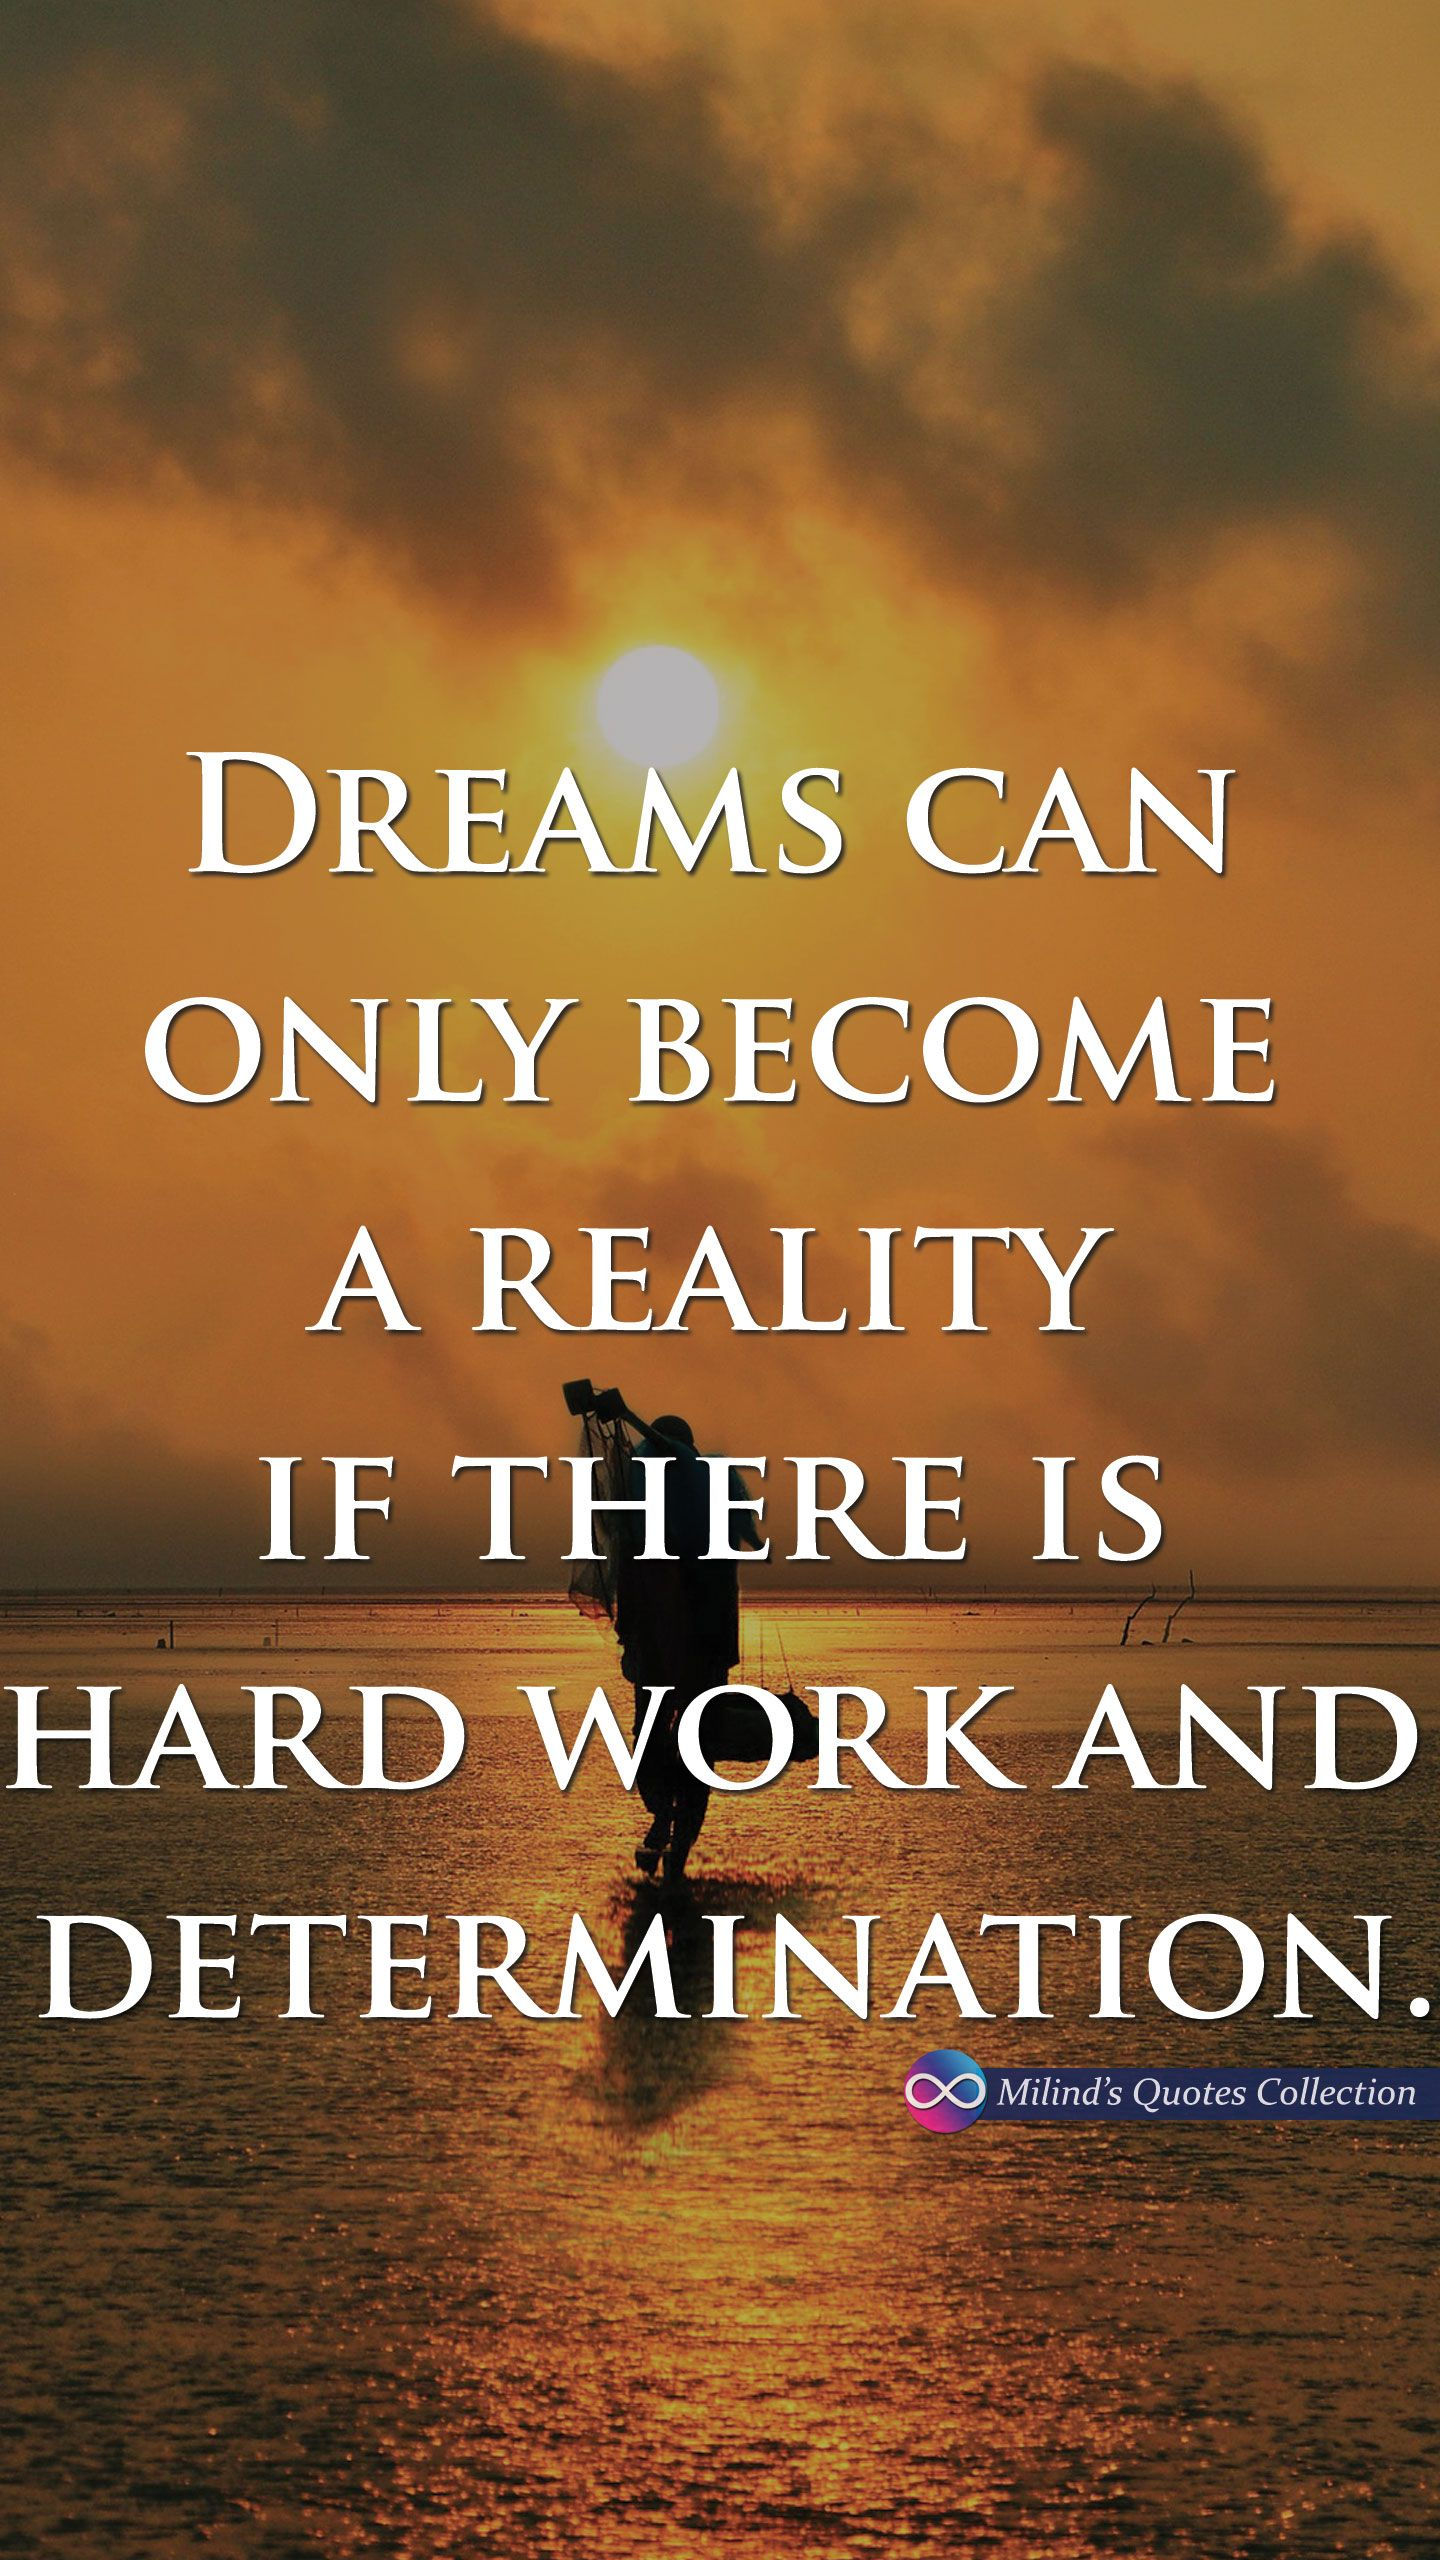 Quotes Hard Work Dreams Can Only Become A Reality If There Is Hard Work And